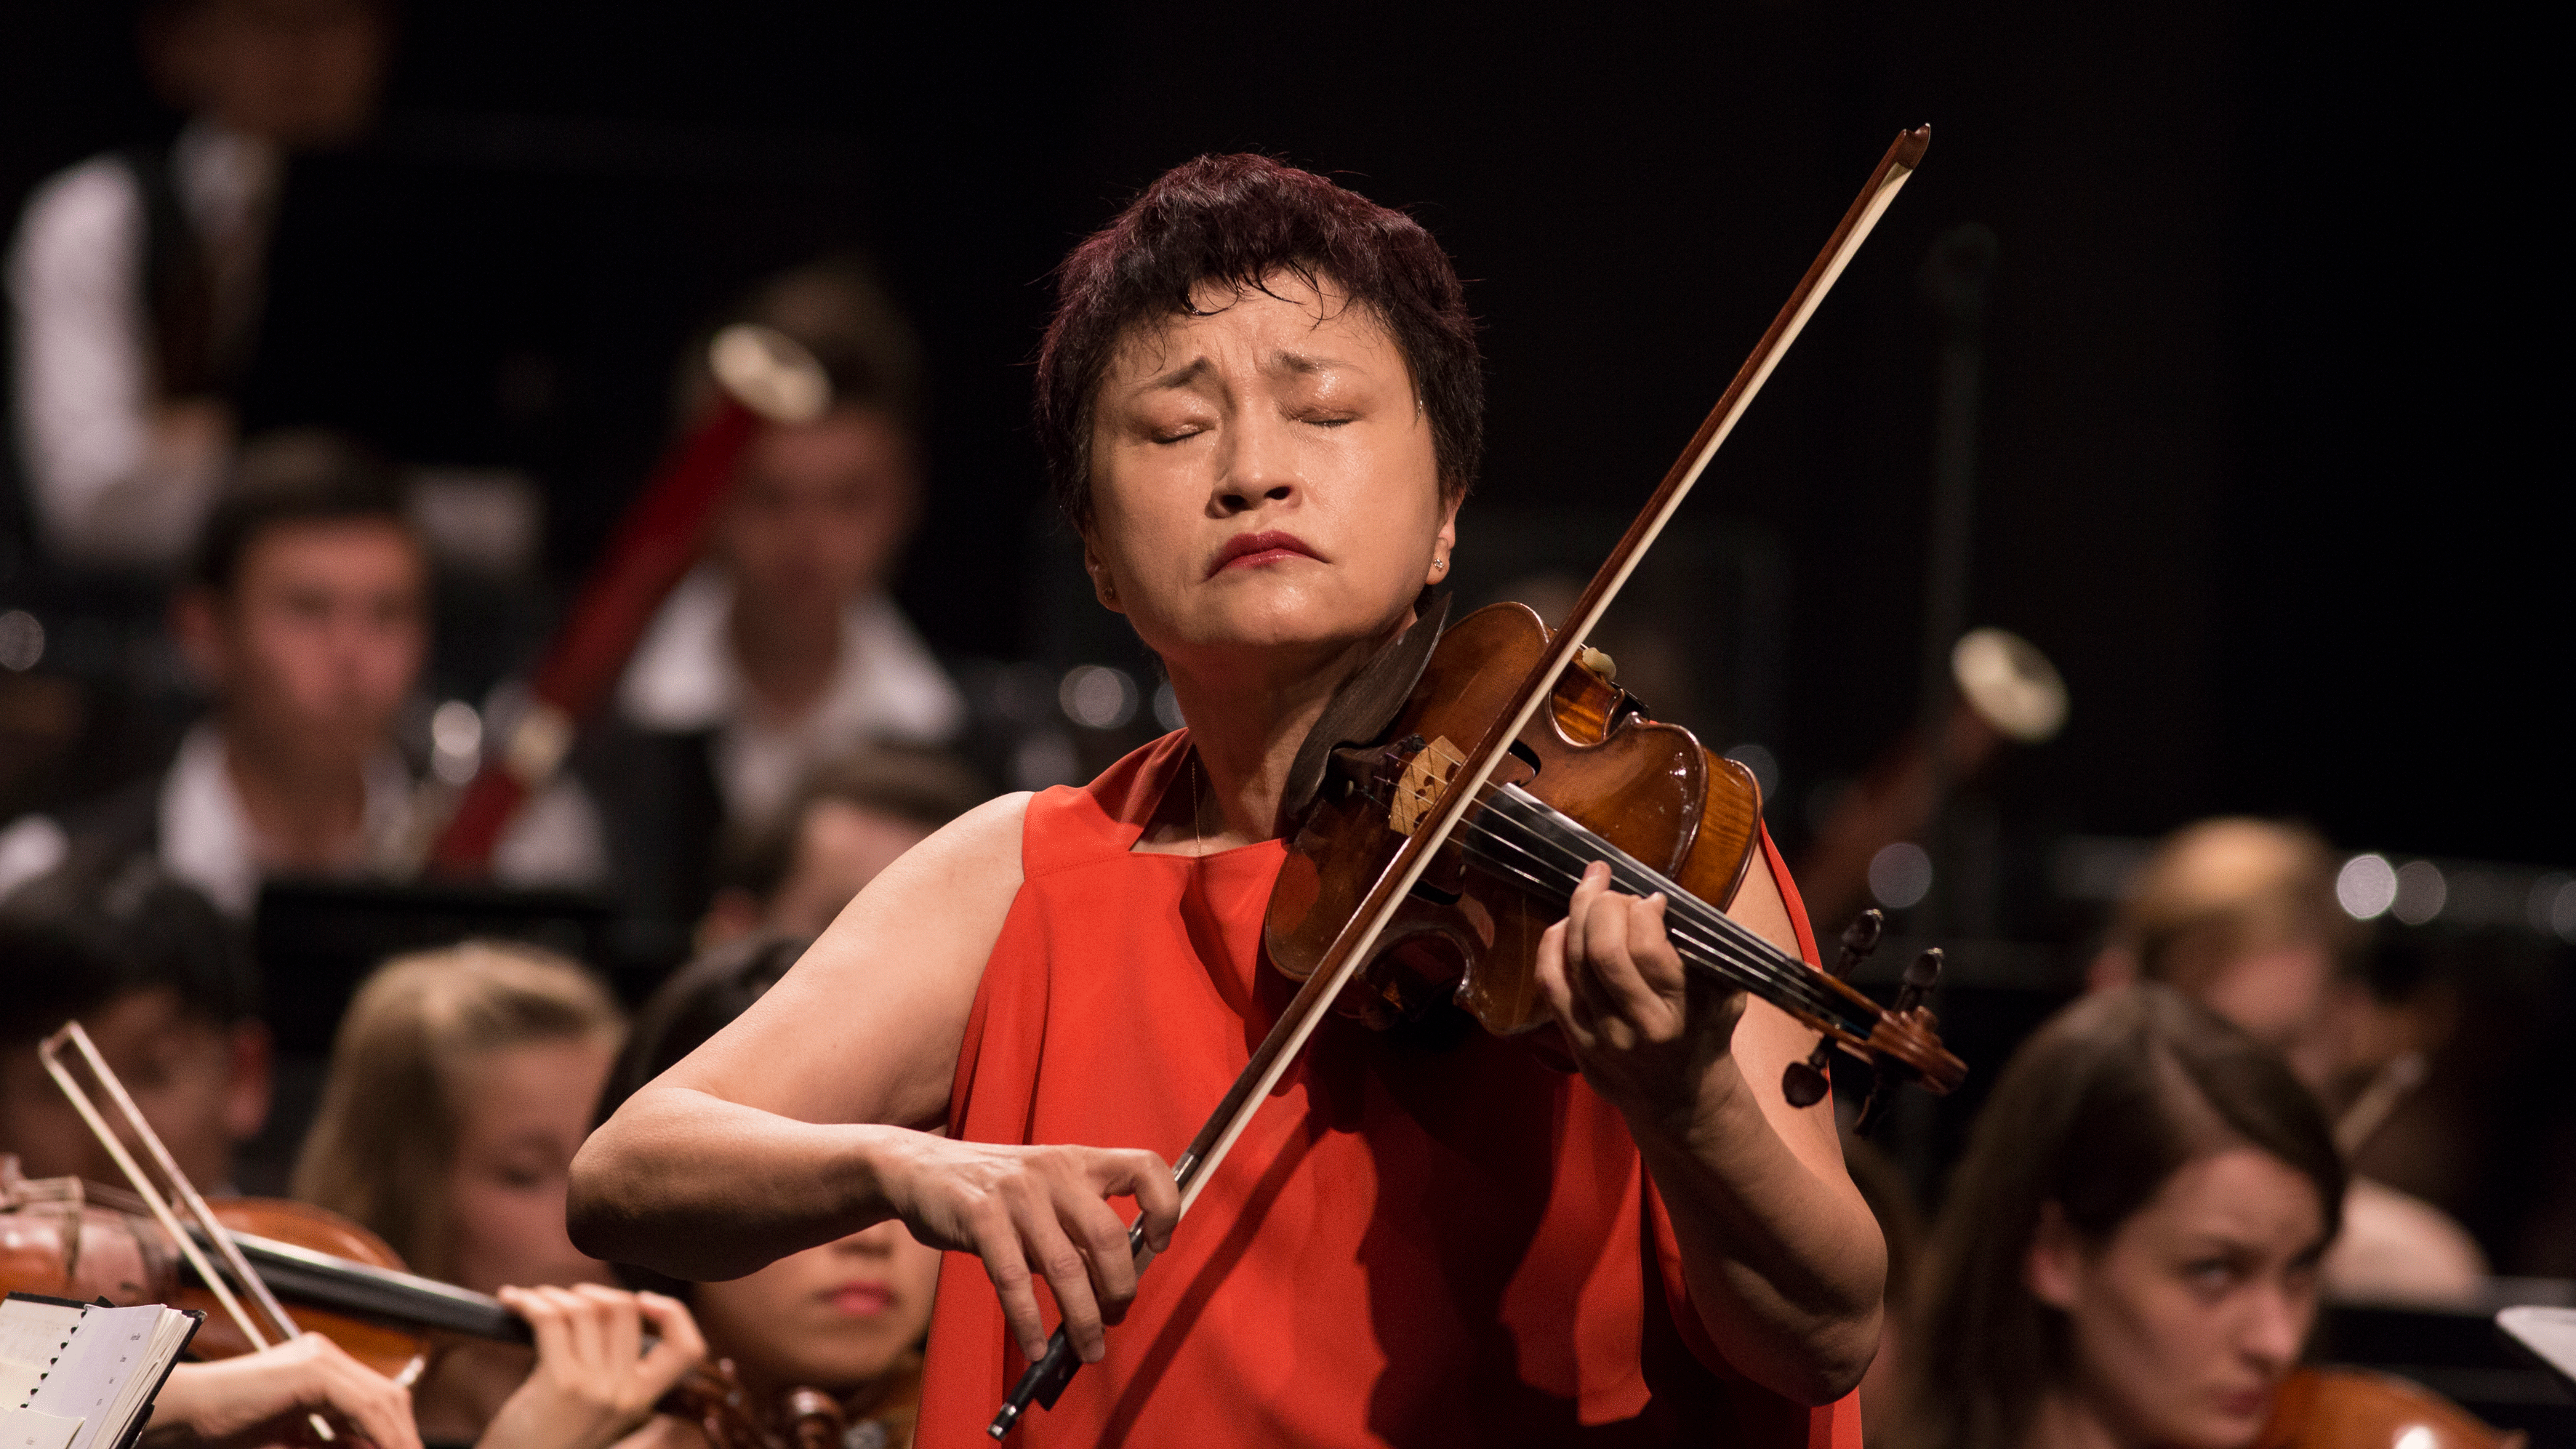 Charles Dutoit conducts Brahms and Berlioz – With Kyung Wha Chung